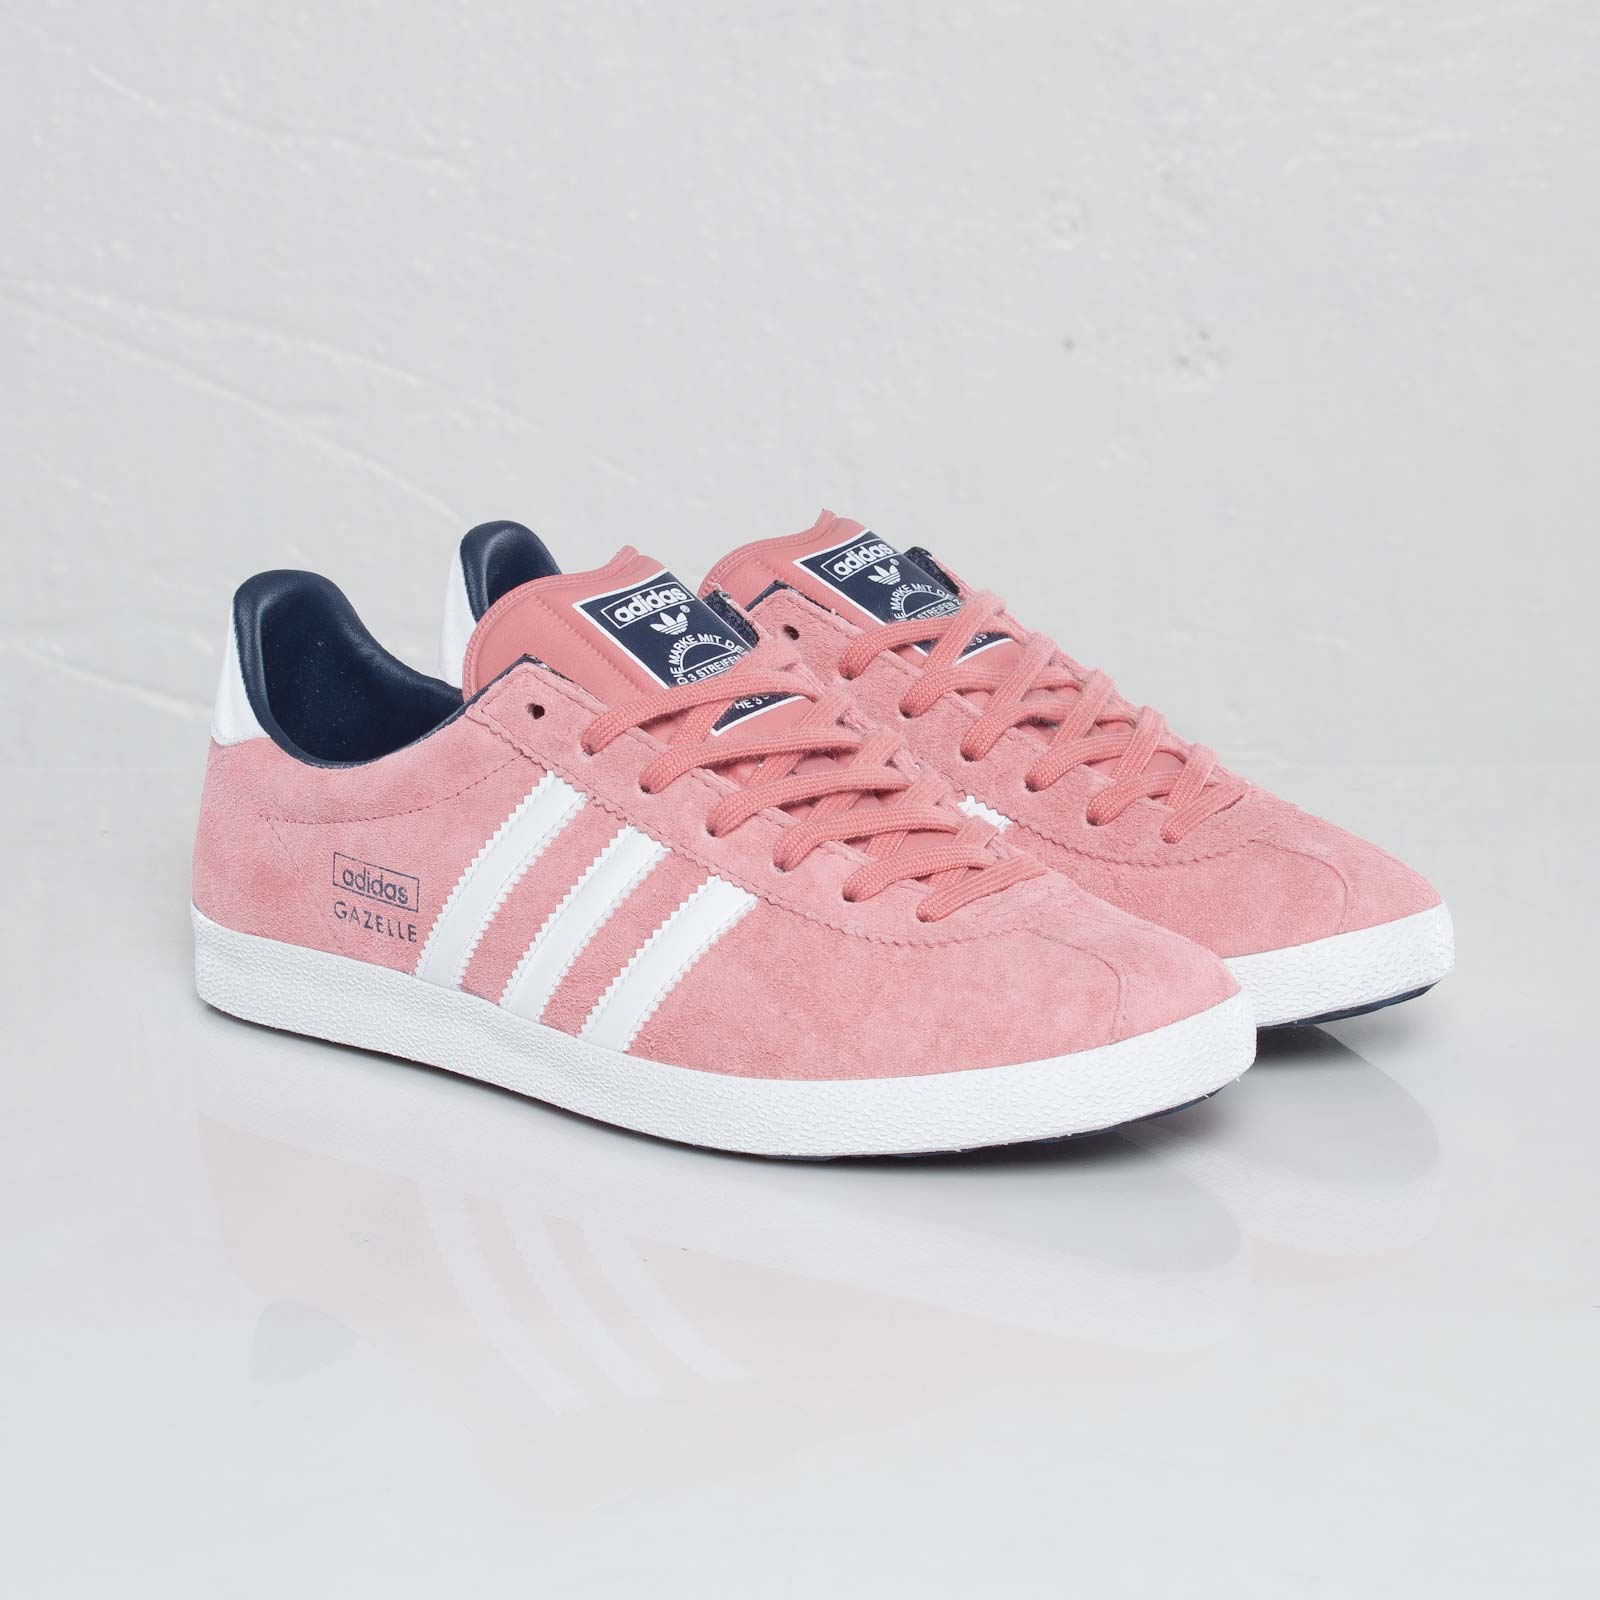 save off b34d4 ad6f2 adidas Gazelle OG W